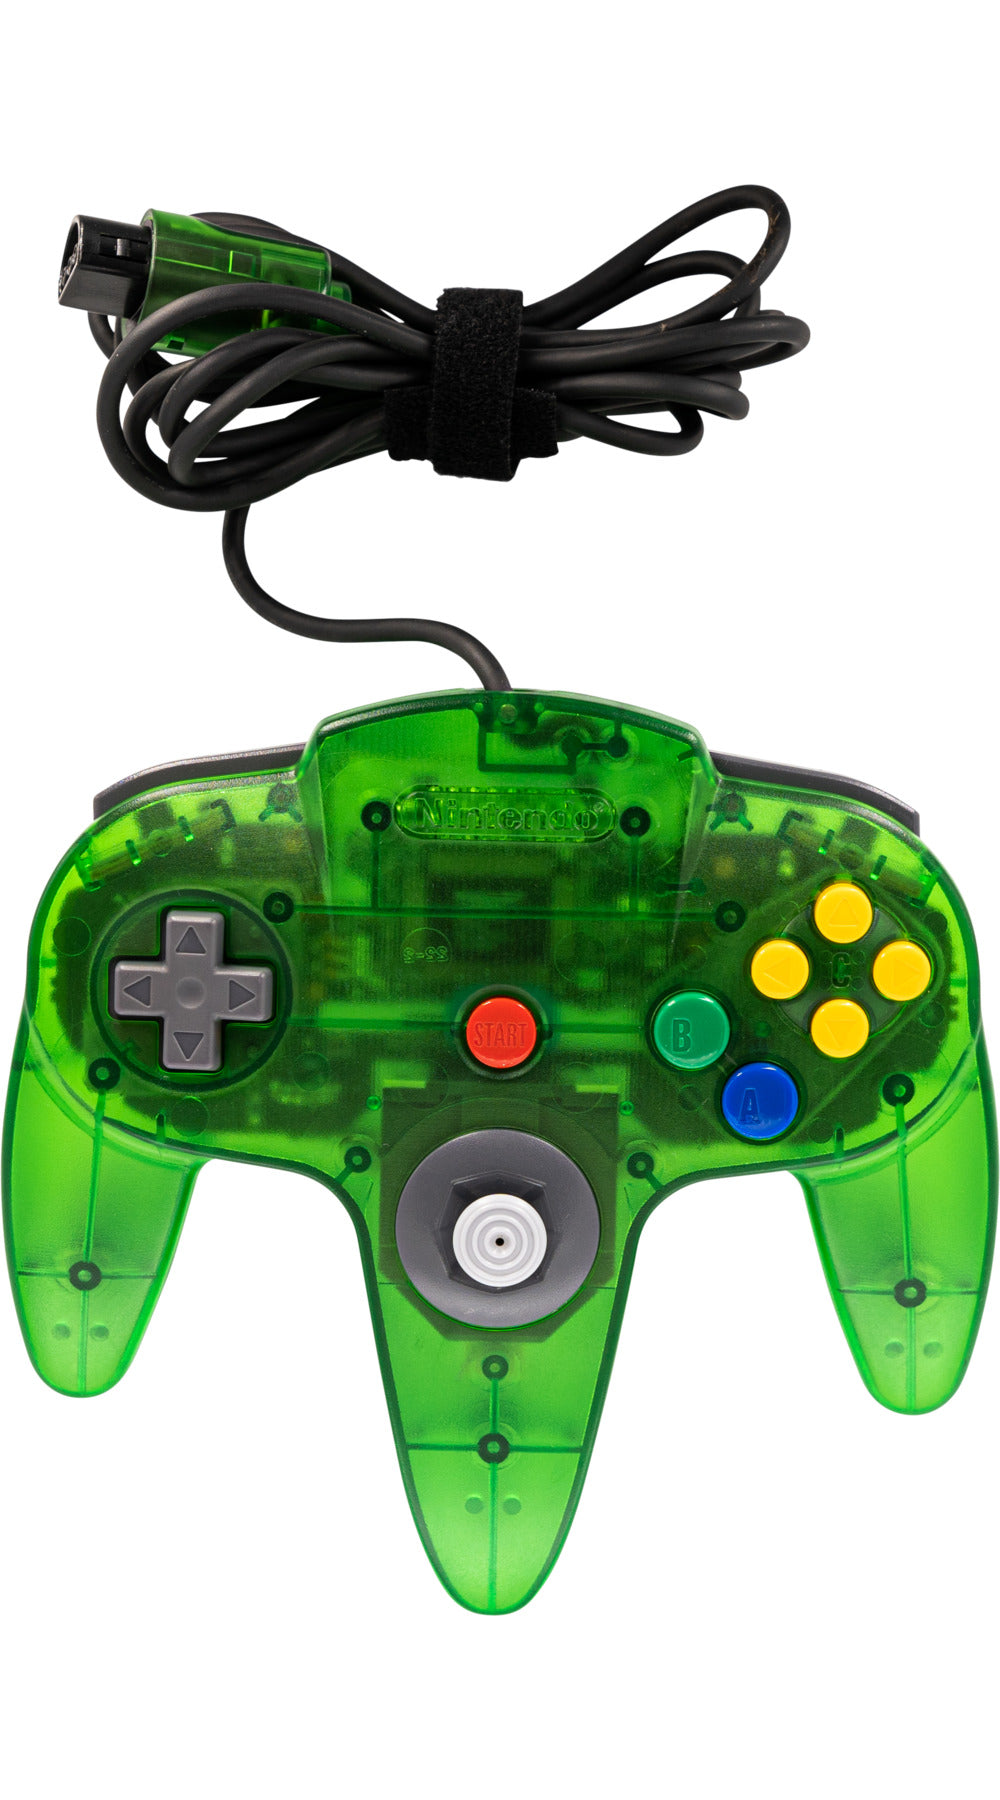 Nintendo N64 Controller Original Funtastic Jungle Green - Video Game Delivery